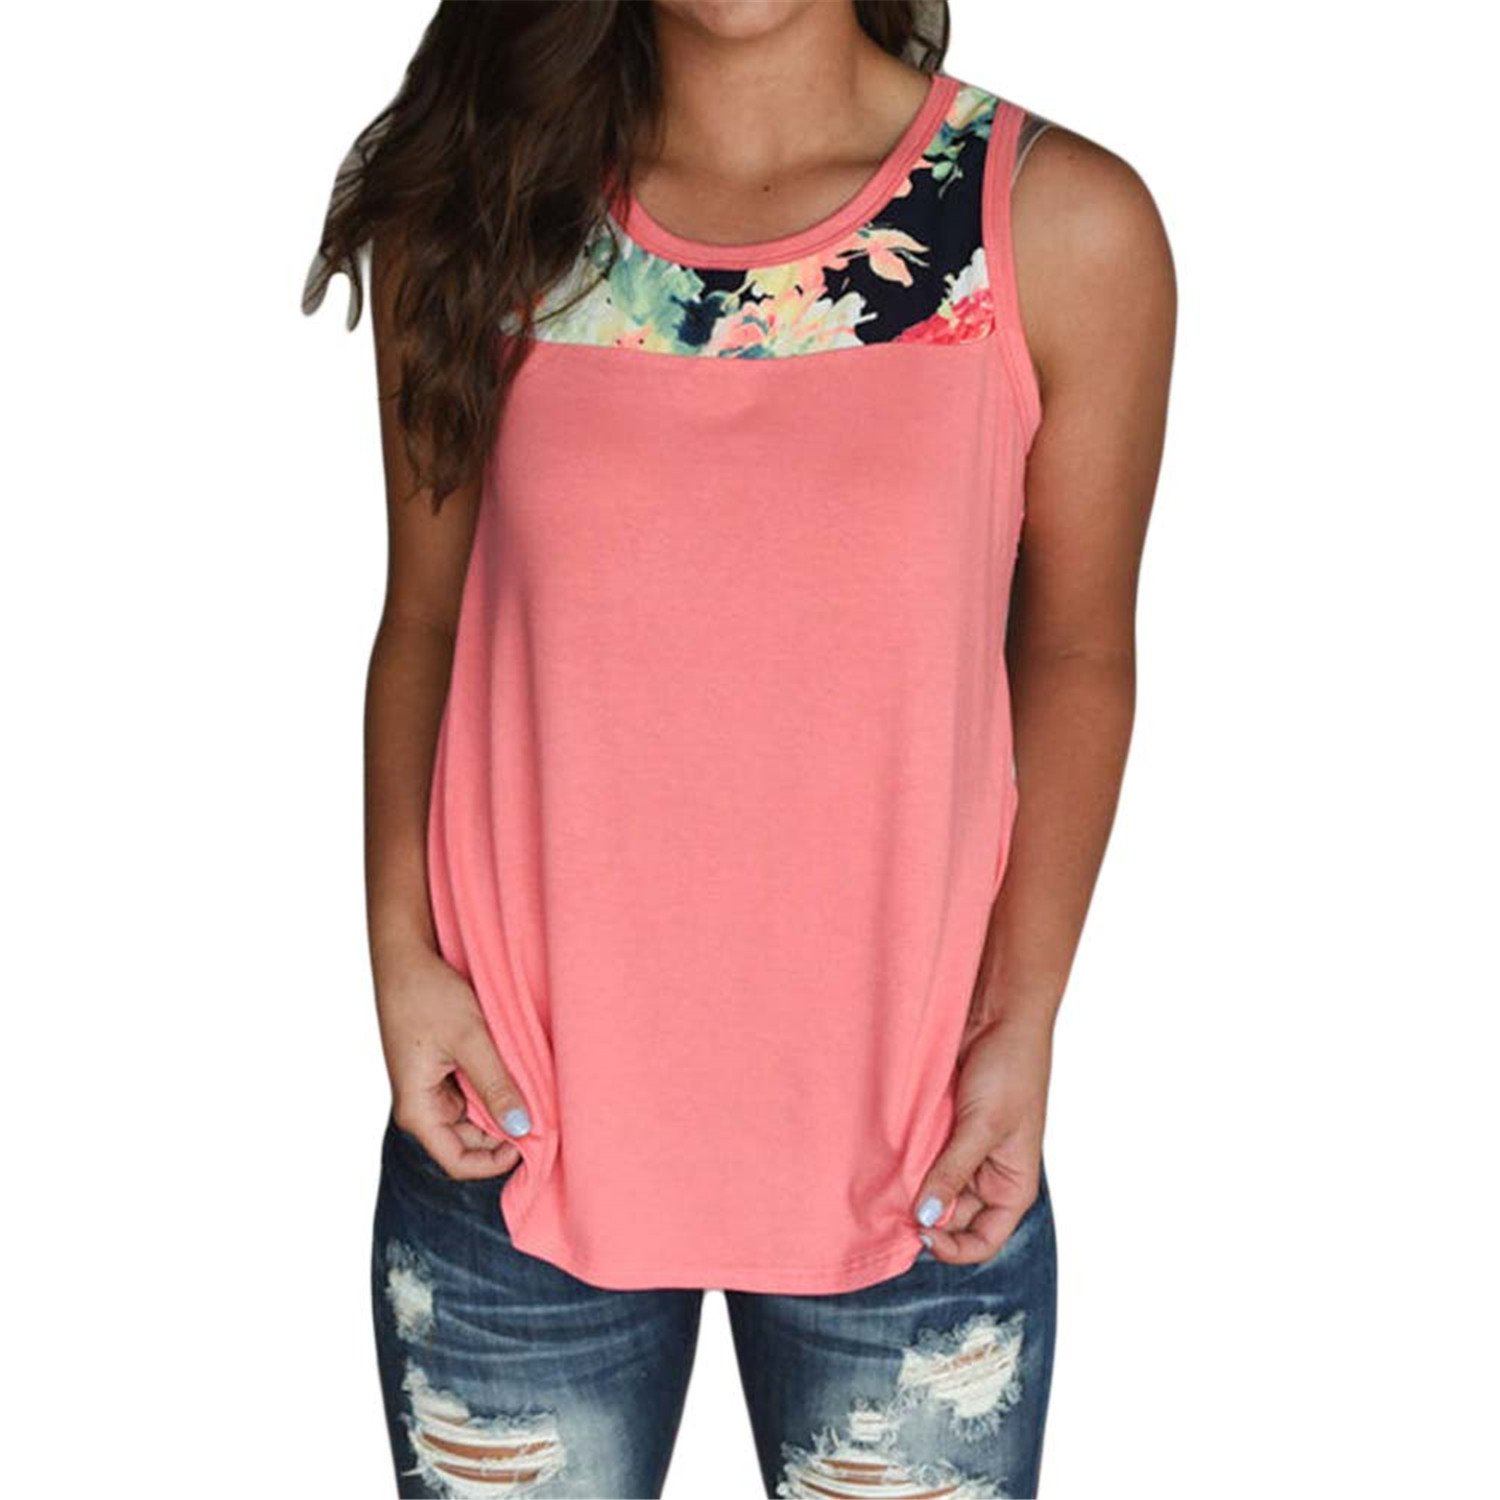 f0ba493f6ea004 Amazon.com  KennsGations Summer Cotton Floral Prints Sleeveless Tops  Patchwork Casual Loose Sexy Women Round Neck Tank Top Tshirts Plus Size  Pink M  ...